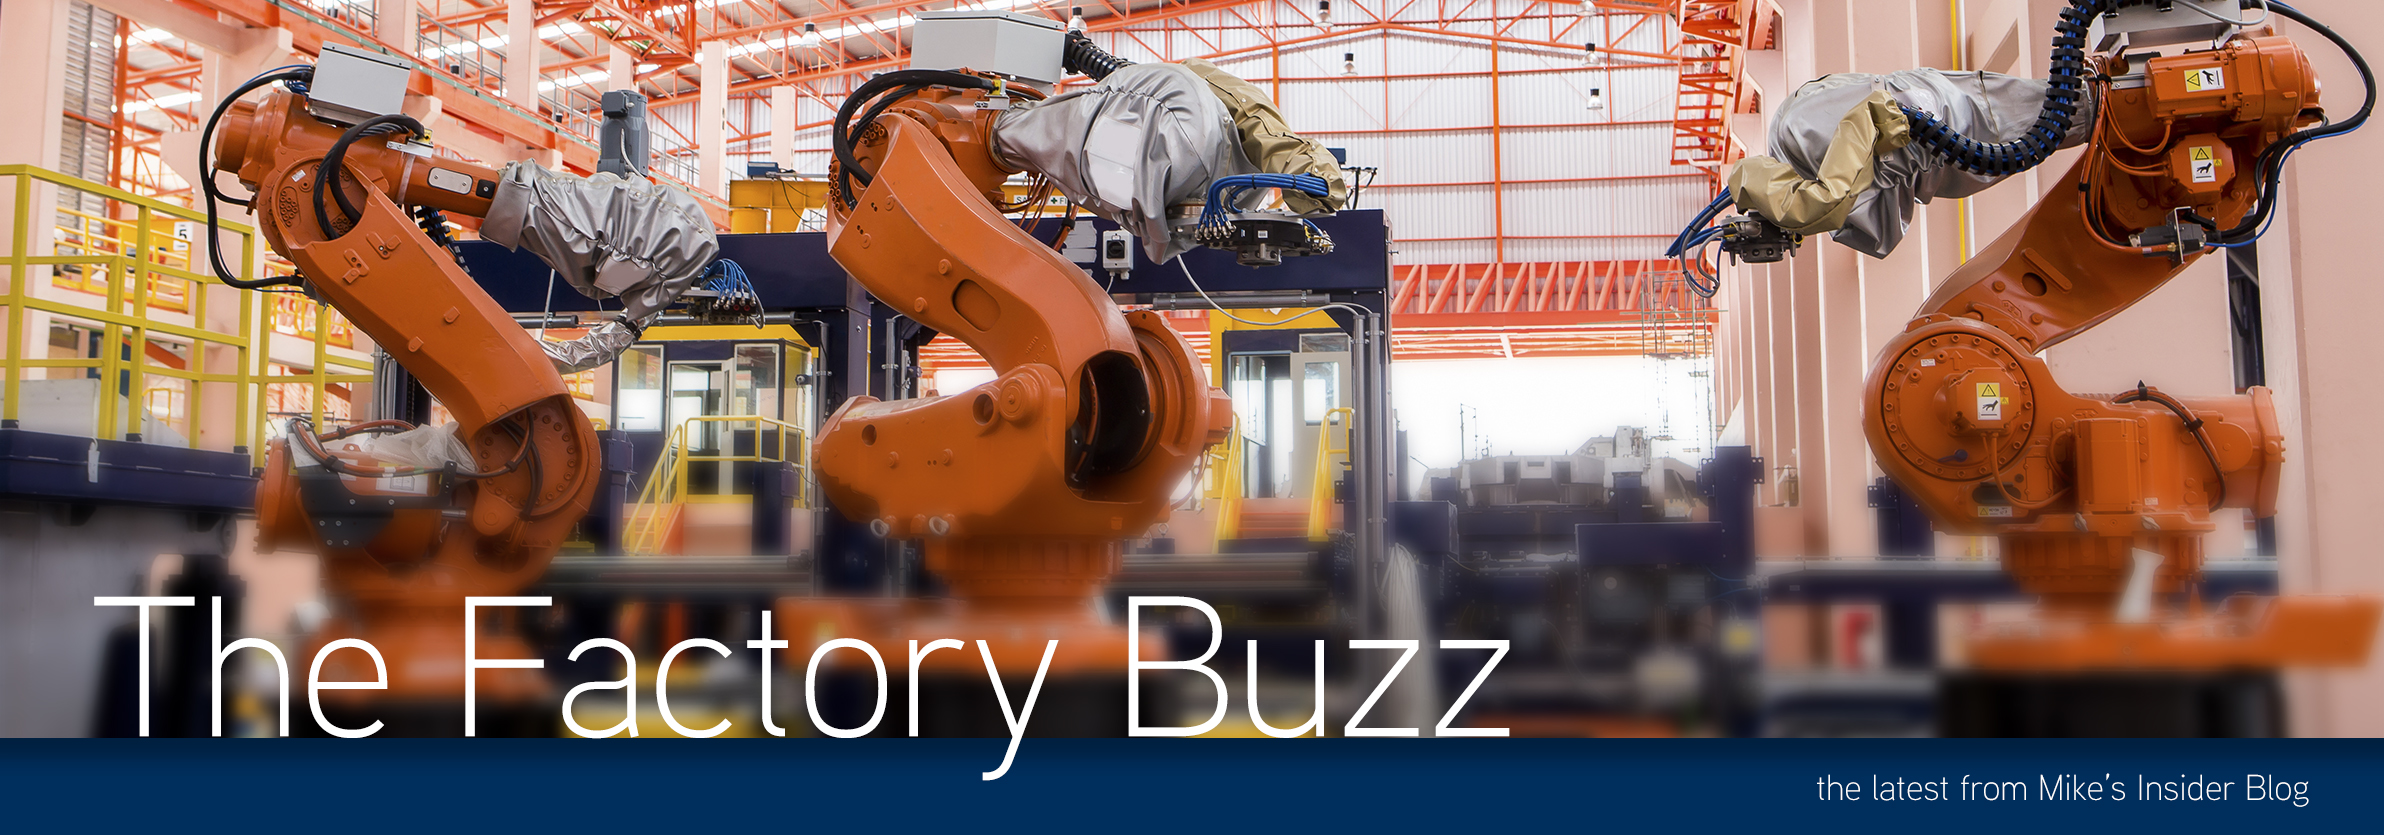 The Factory Buzz